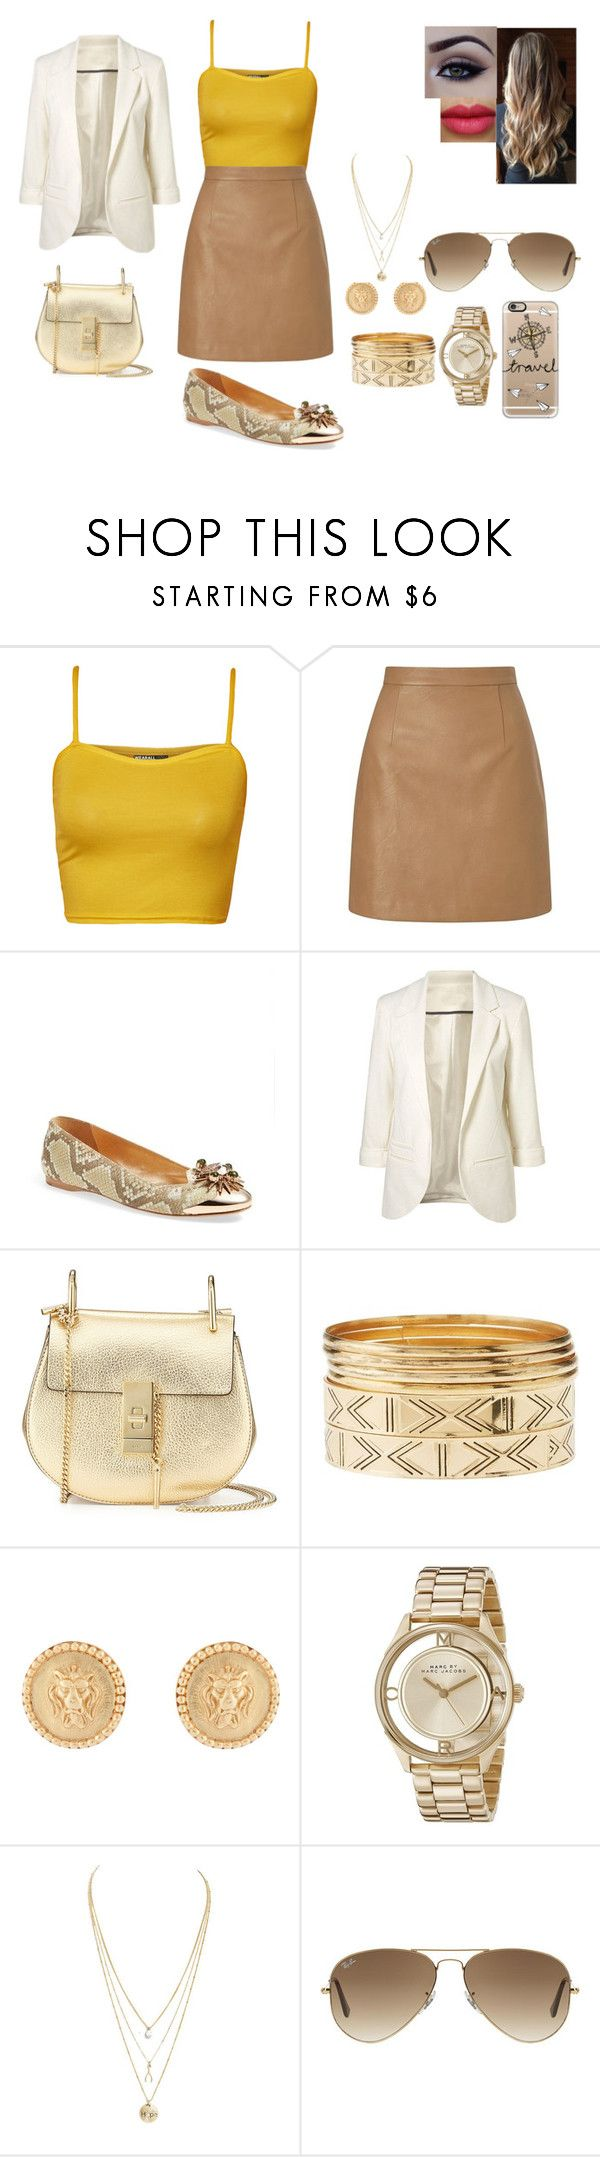 Sin título #75 by danielarivas99 on Polyvore featuring moda, WearAll, Lipsy, Ivy Kirzhner, Chloé, Marc by Marc Jacobs, Julie Vos, Charlotte Russe, Ray-Ban and Casetify